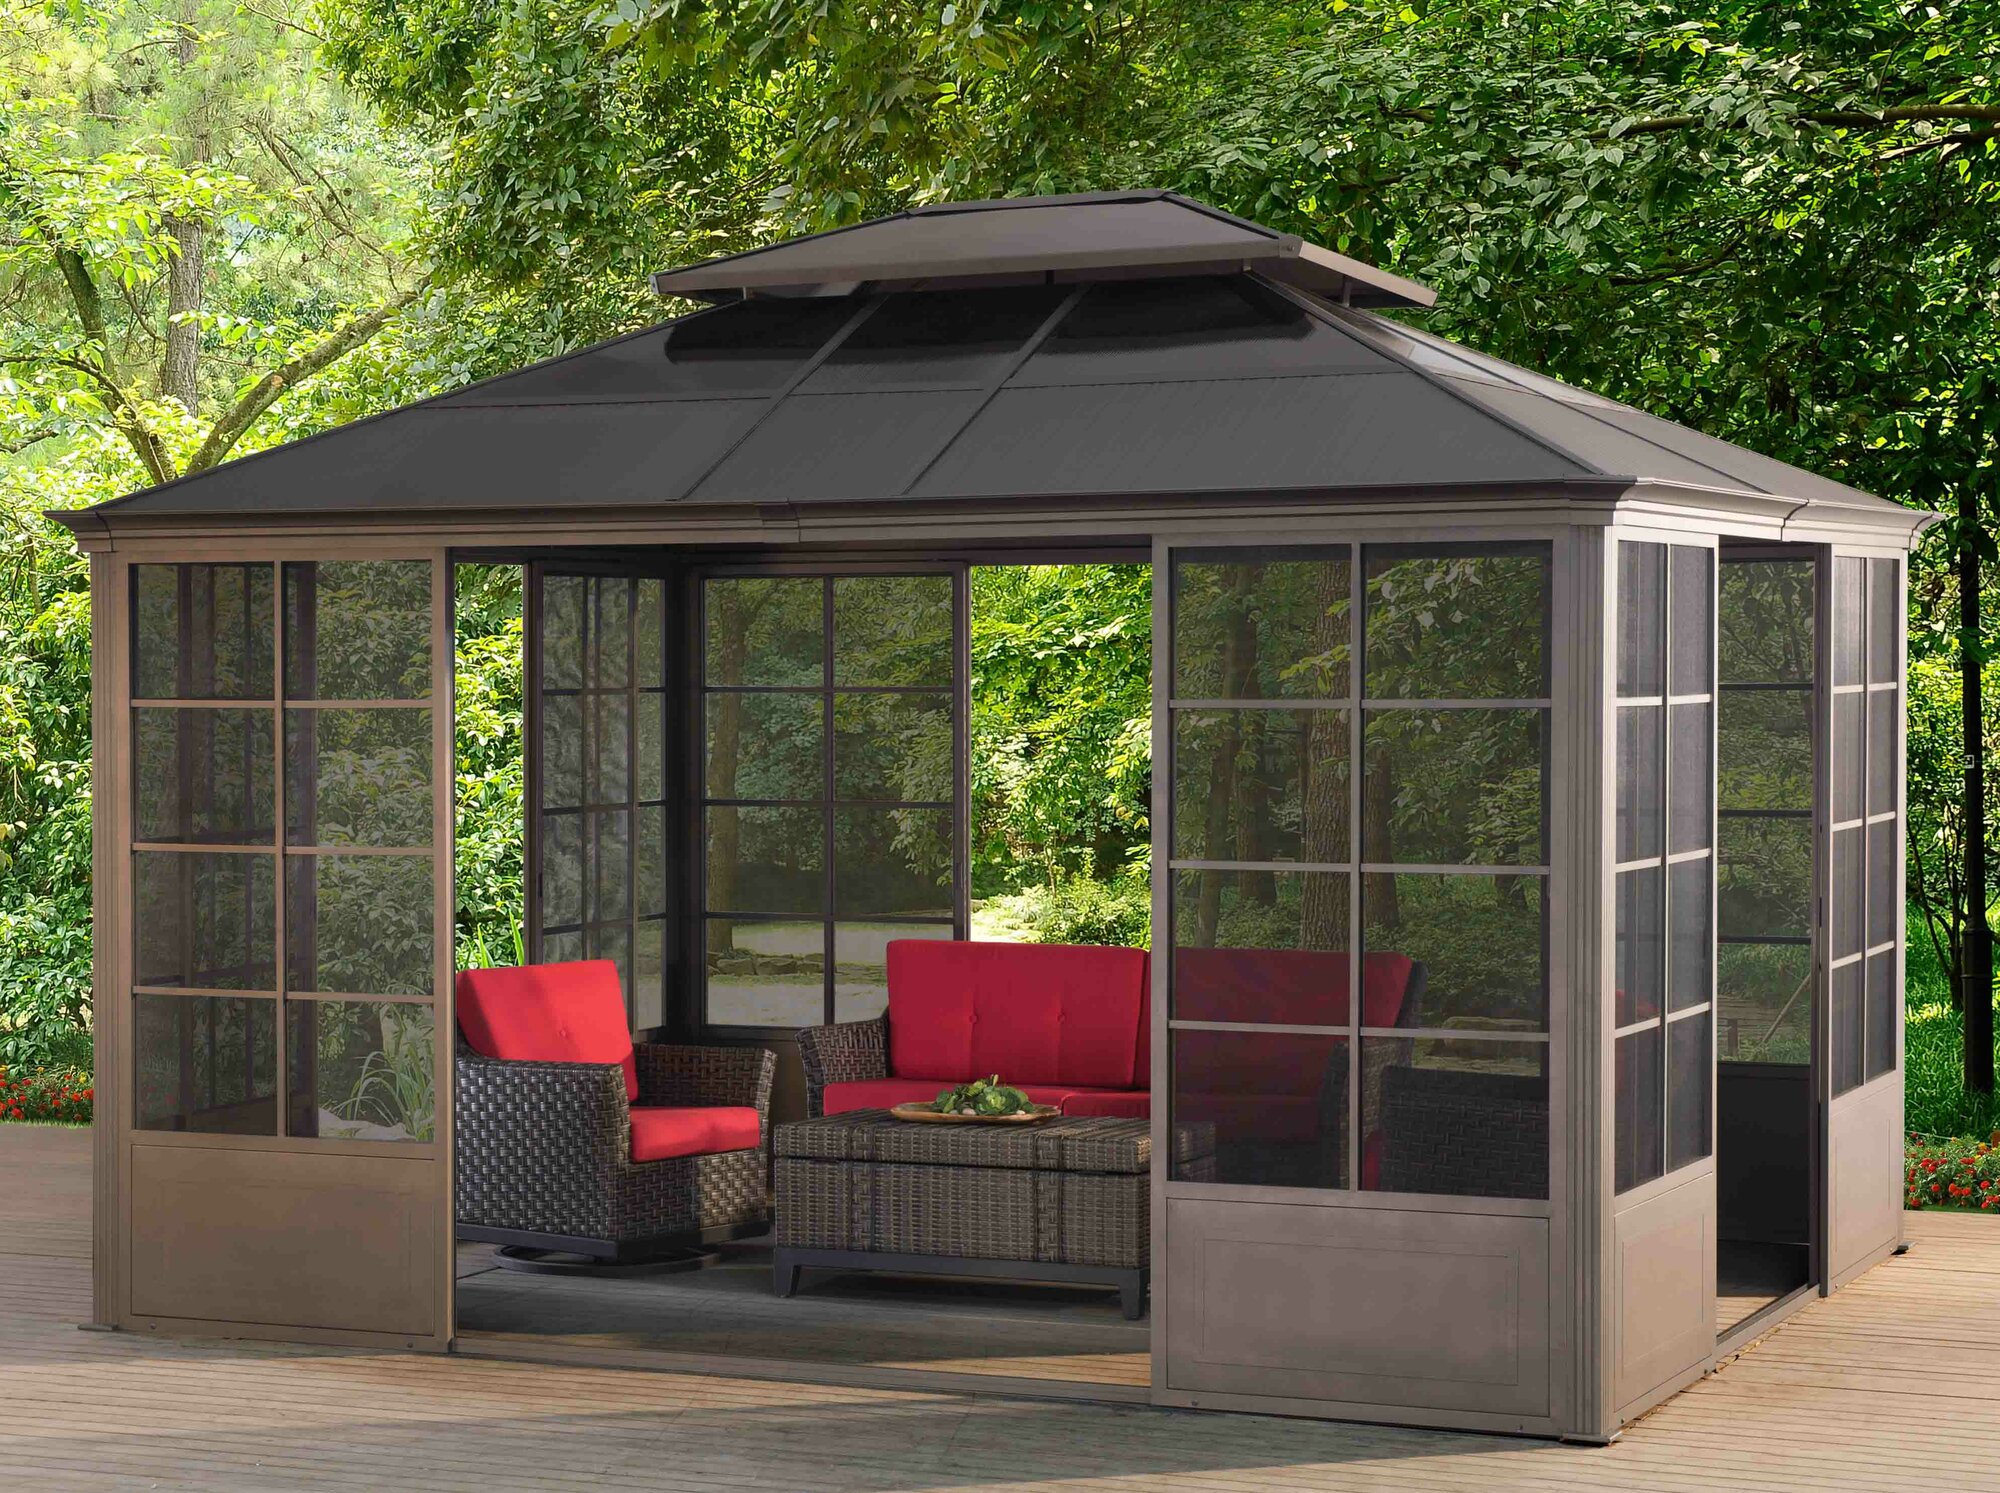 sunjoy 9 ft w x 14 ft d metal permanent gazebo ebay. Black Bedroom Furniture Sets. Home Design Ideas